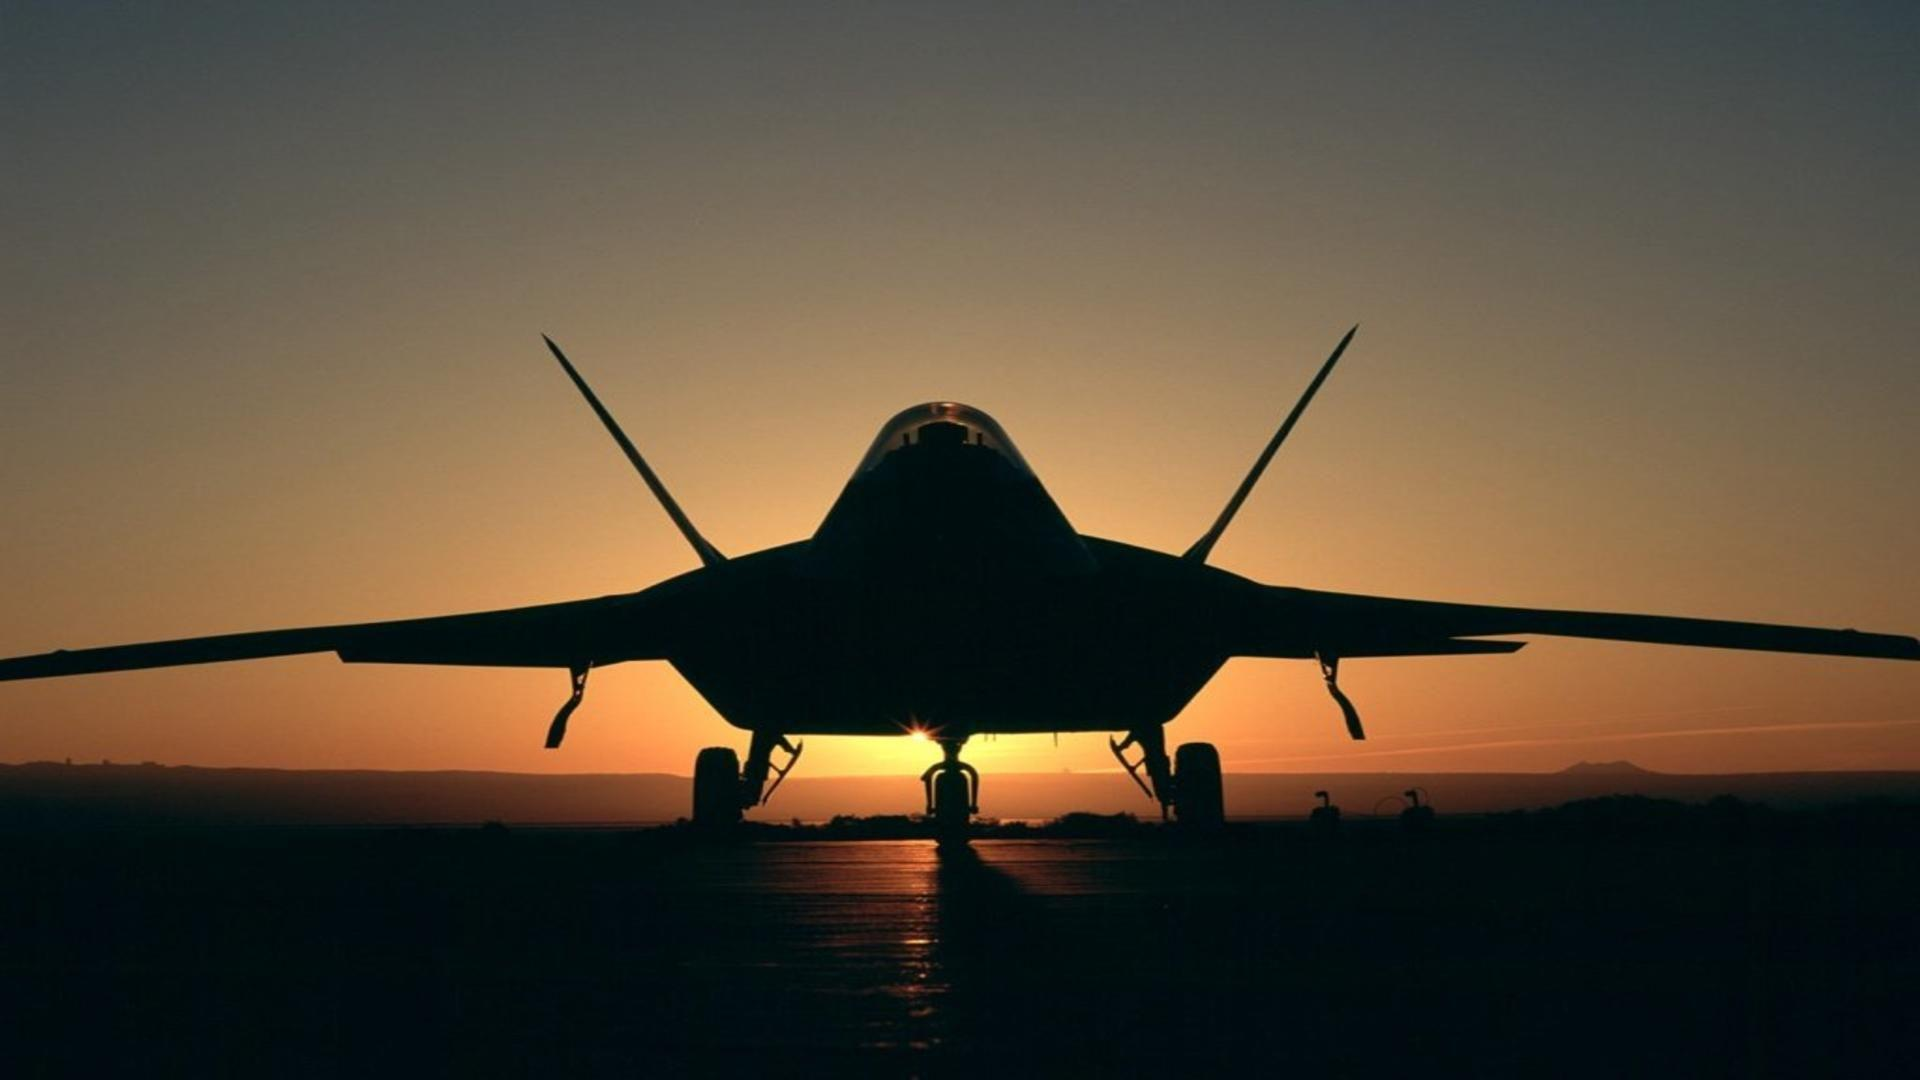 f22 raptor wallpaper 1920x1080